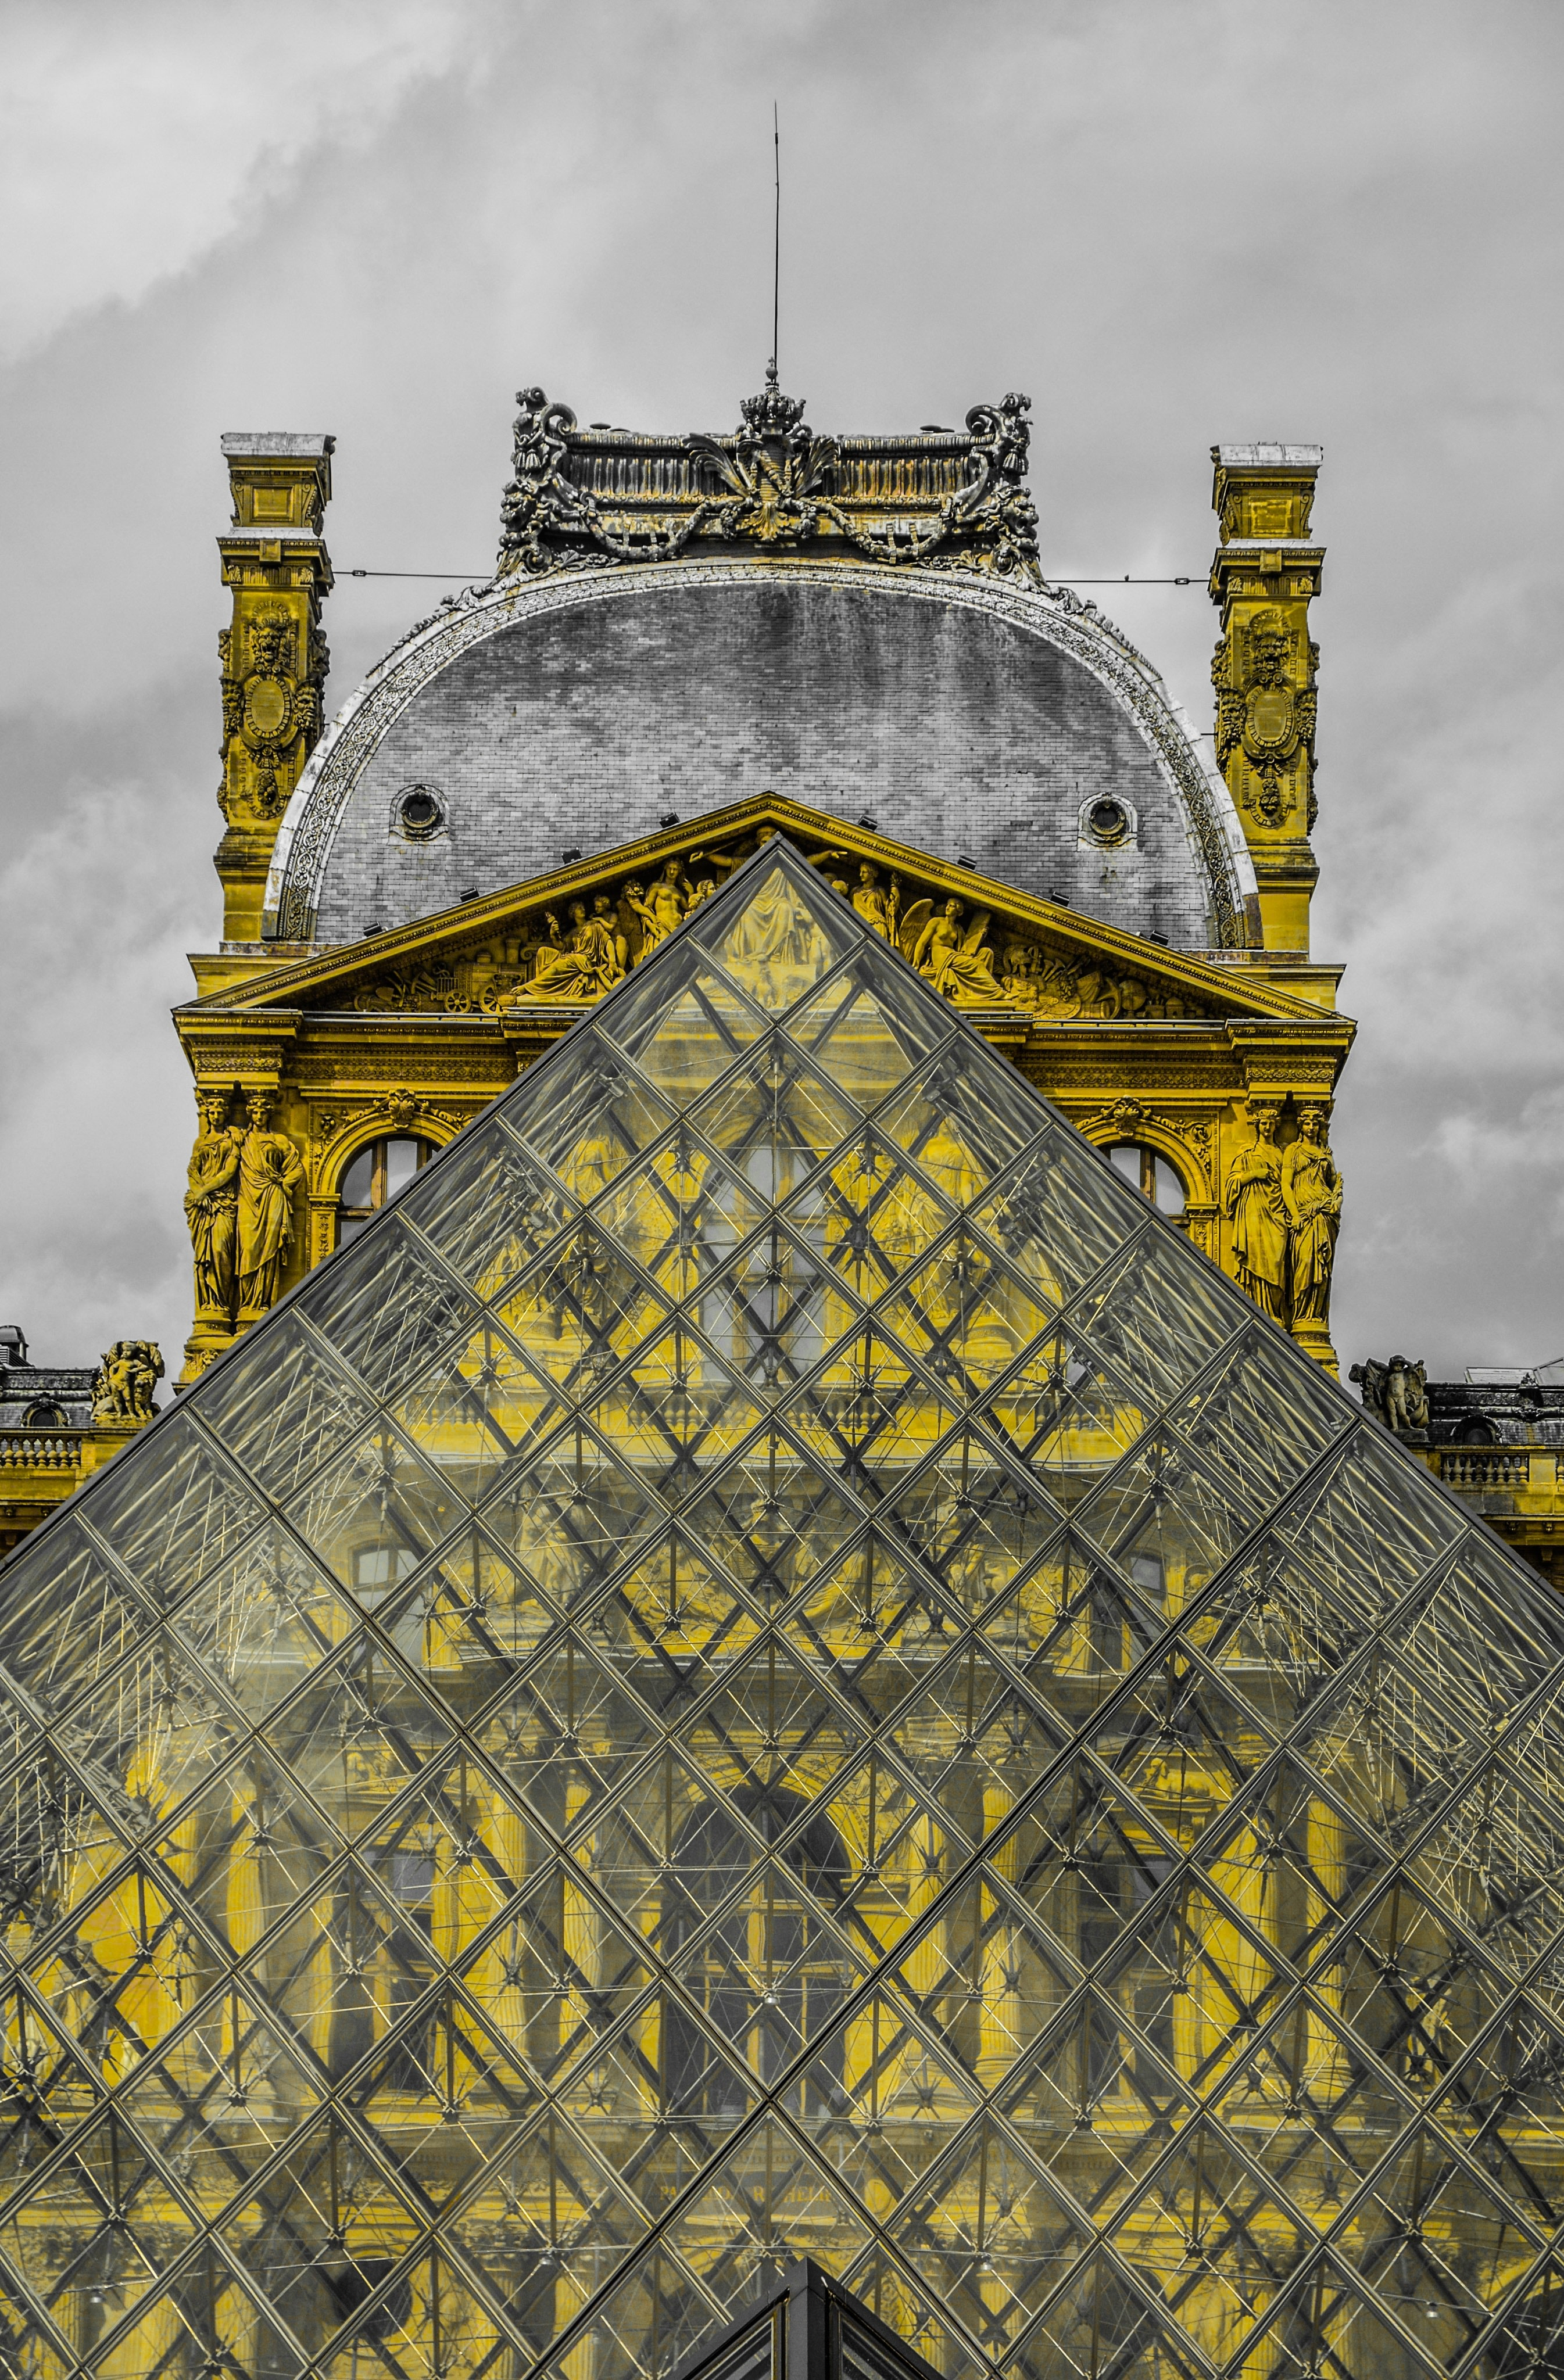 The glass pyramid in front of the Louvre on a cloudy day